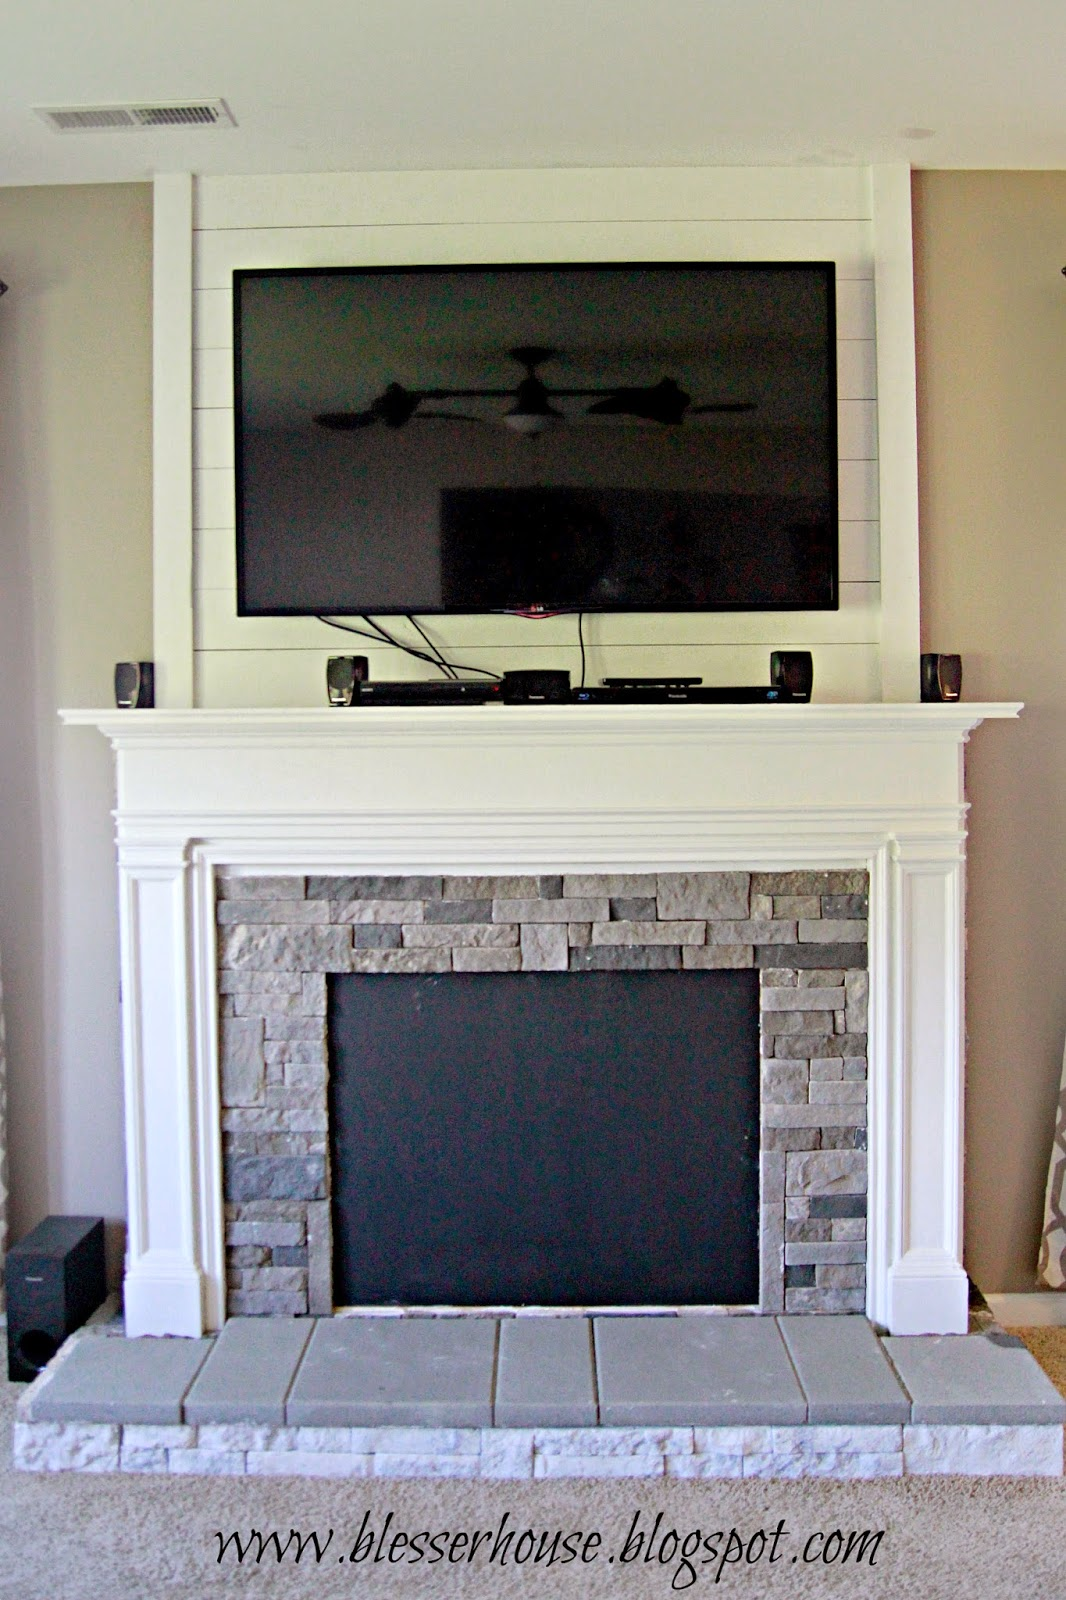 DIY Faux Fireplace Entertainment Center Part 3 - Bless'er ...